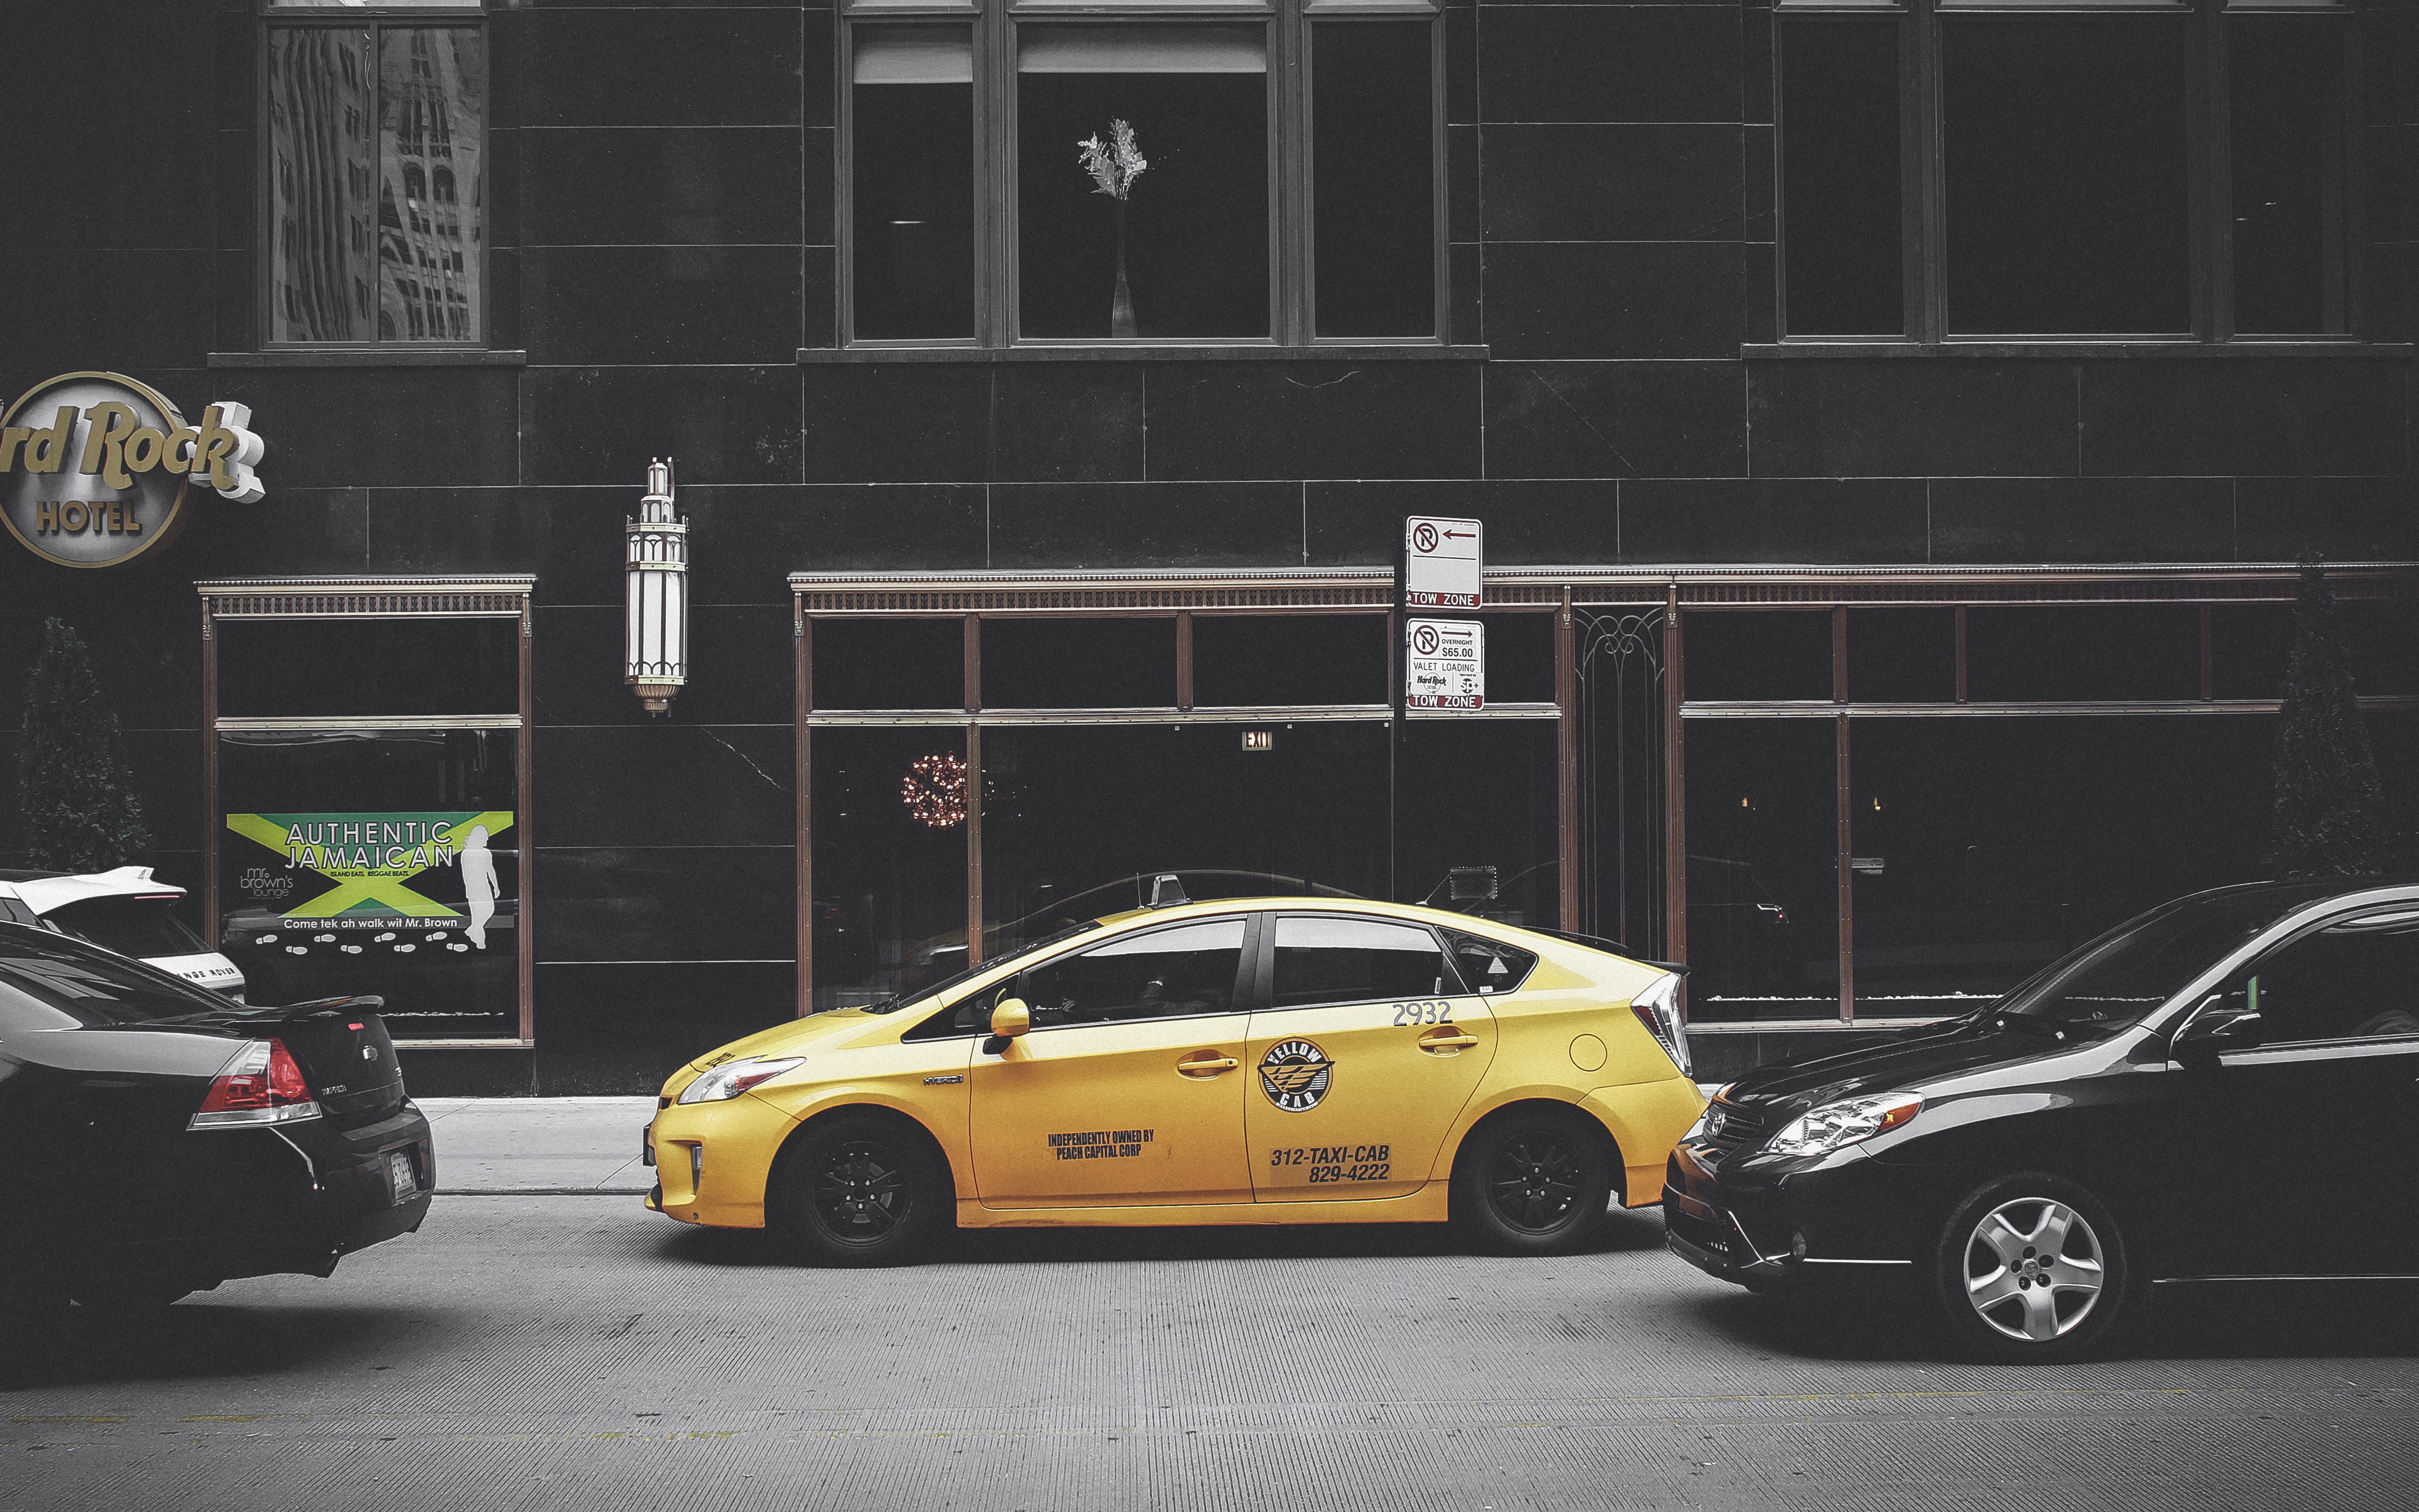 Yellow taxi cab parked on a busy street by a dark building